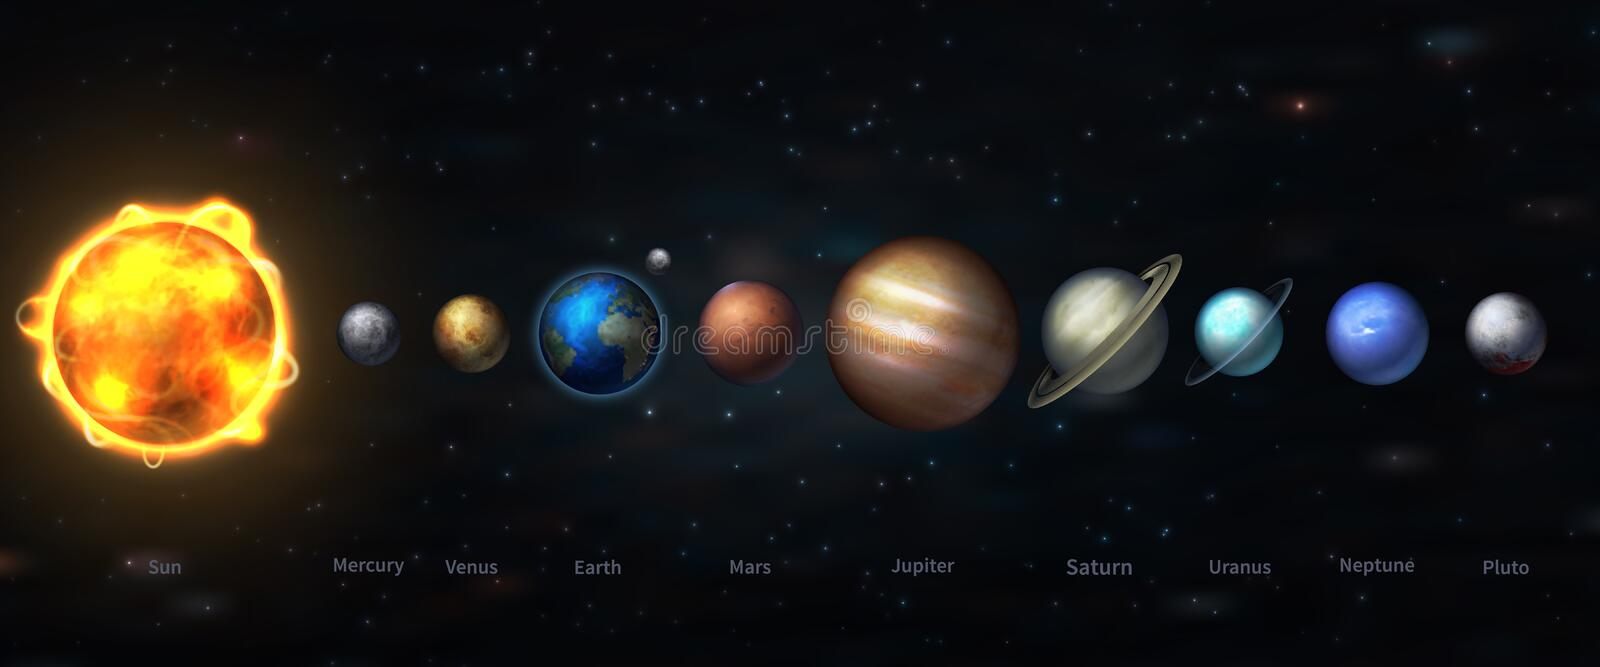 The solar system in our galaxy is all the planets of our system. Vector realism. vector illustration of astronomy and astrology stock illustration